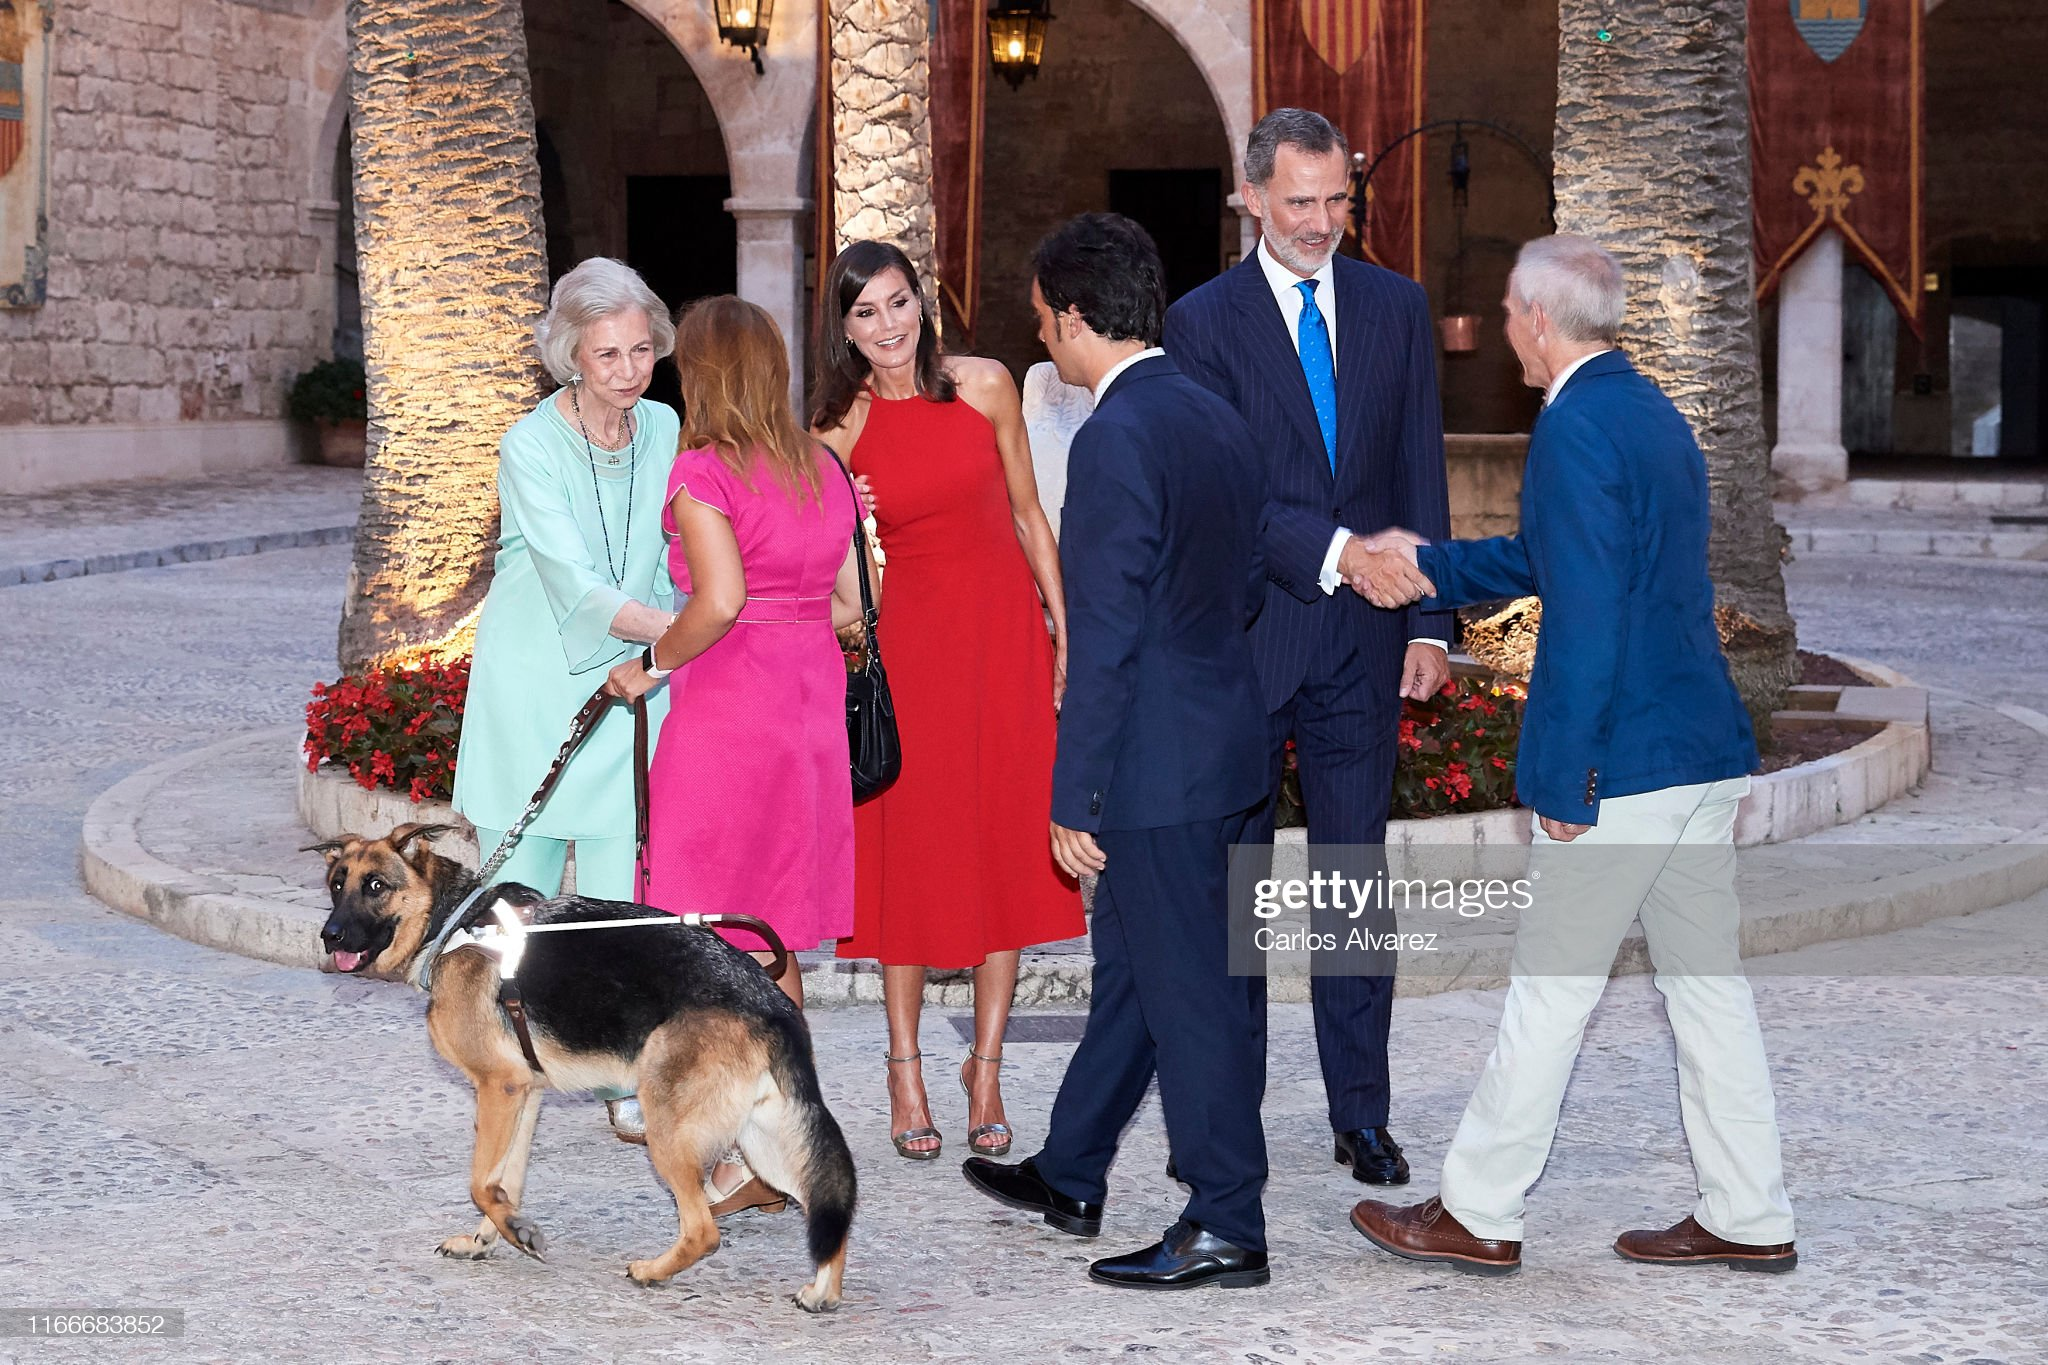 https://media.gettyimages.com/photos/king-felipe-vi-of-spain-queen-letizia-of-spain-and-queen-sofia-host-a-picture-id1166683852?s=2048x2048